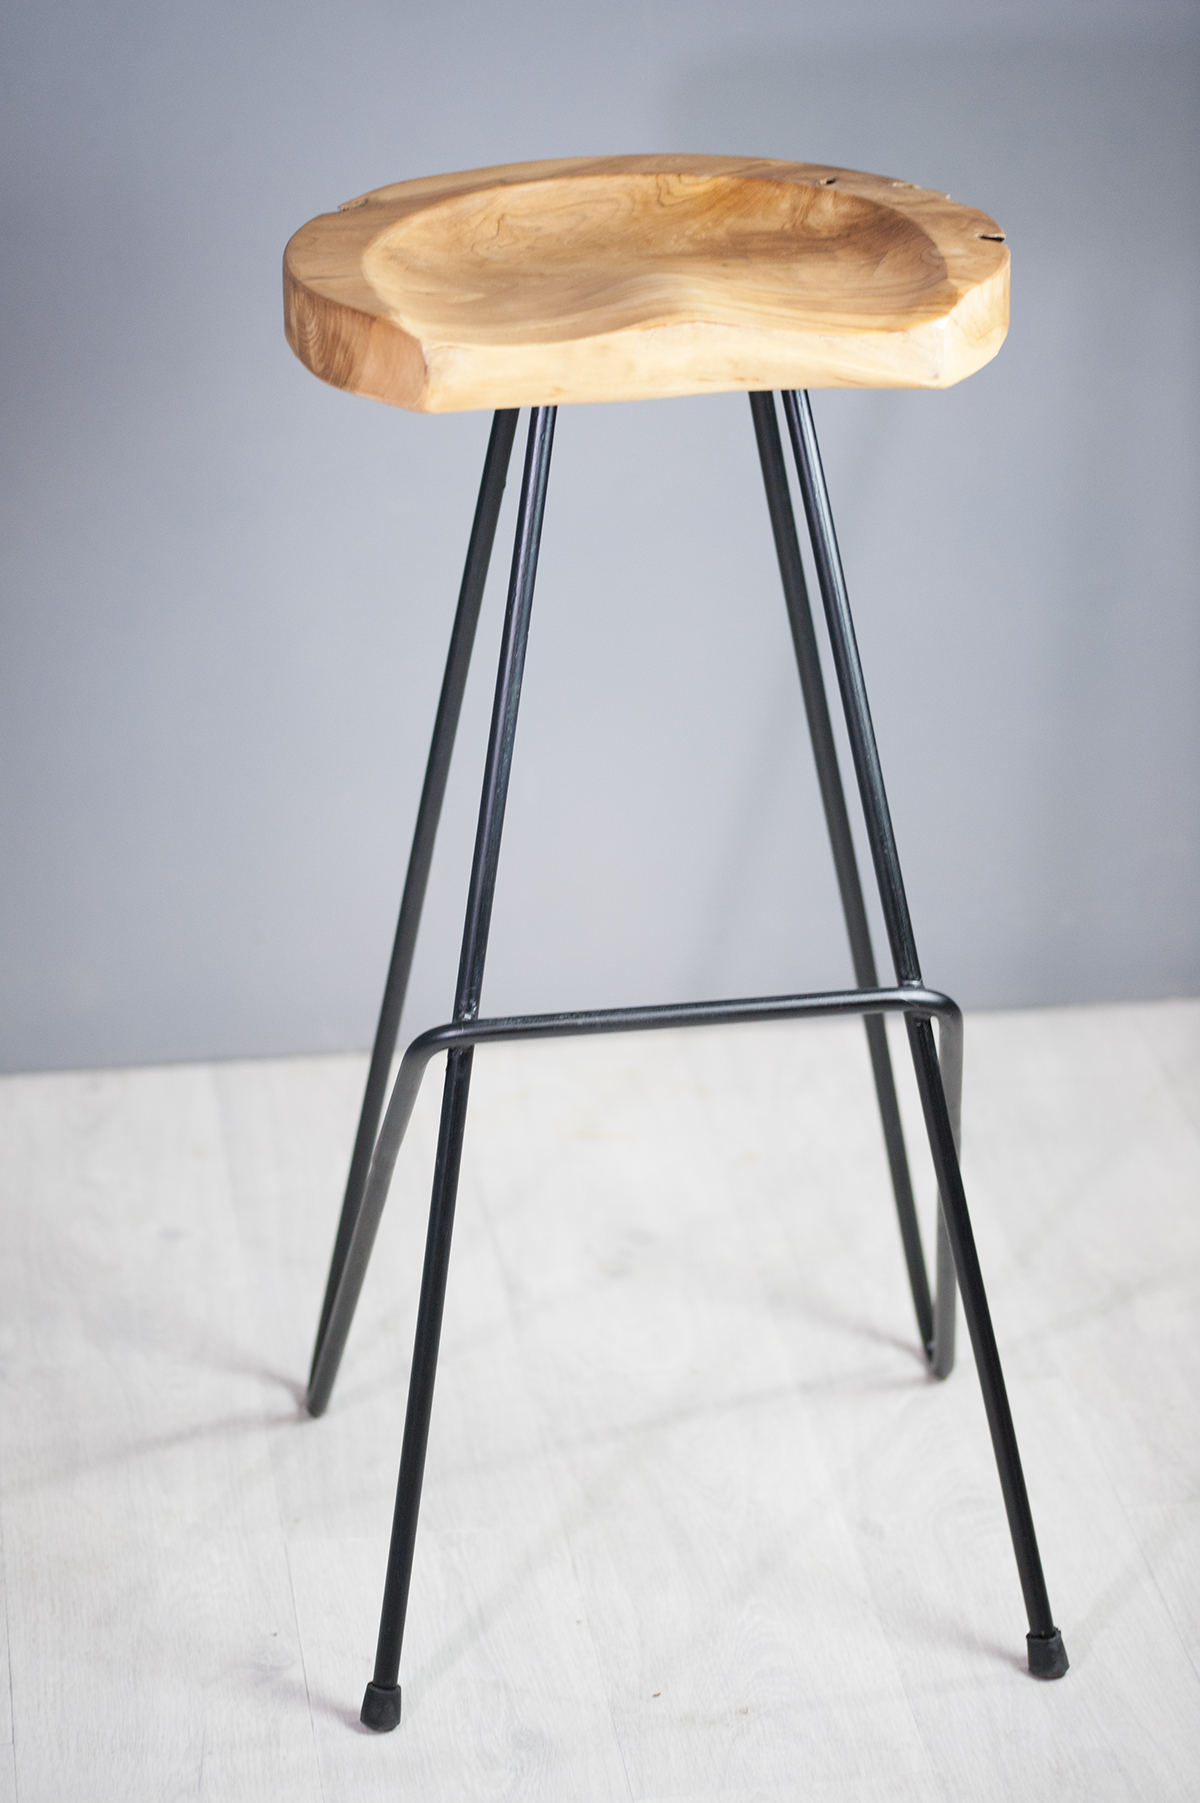 Tabouret design tabouret de bar en racine de teck et m tal for Siege de bar design